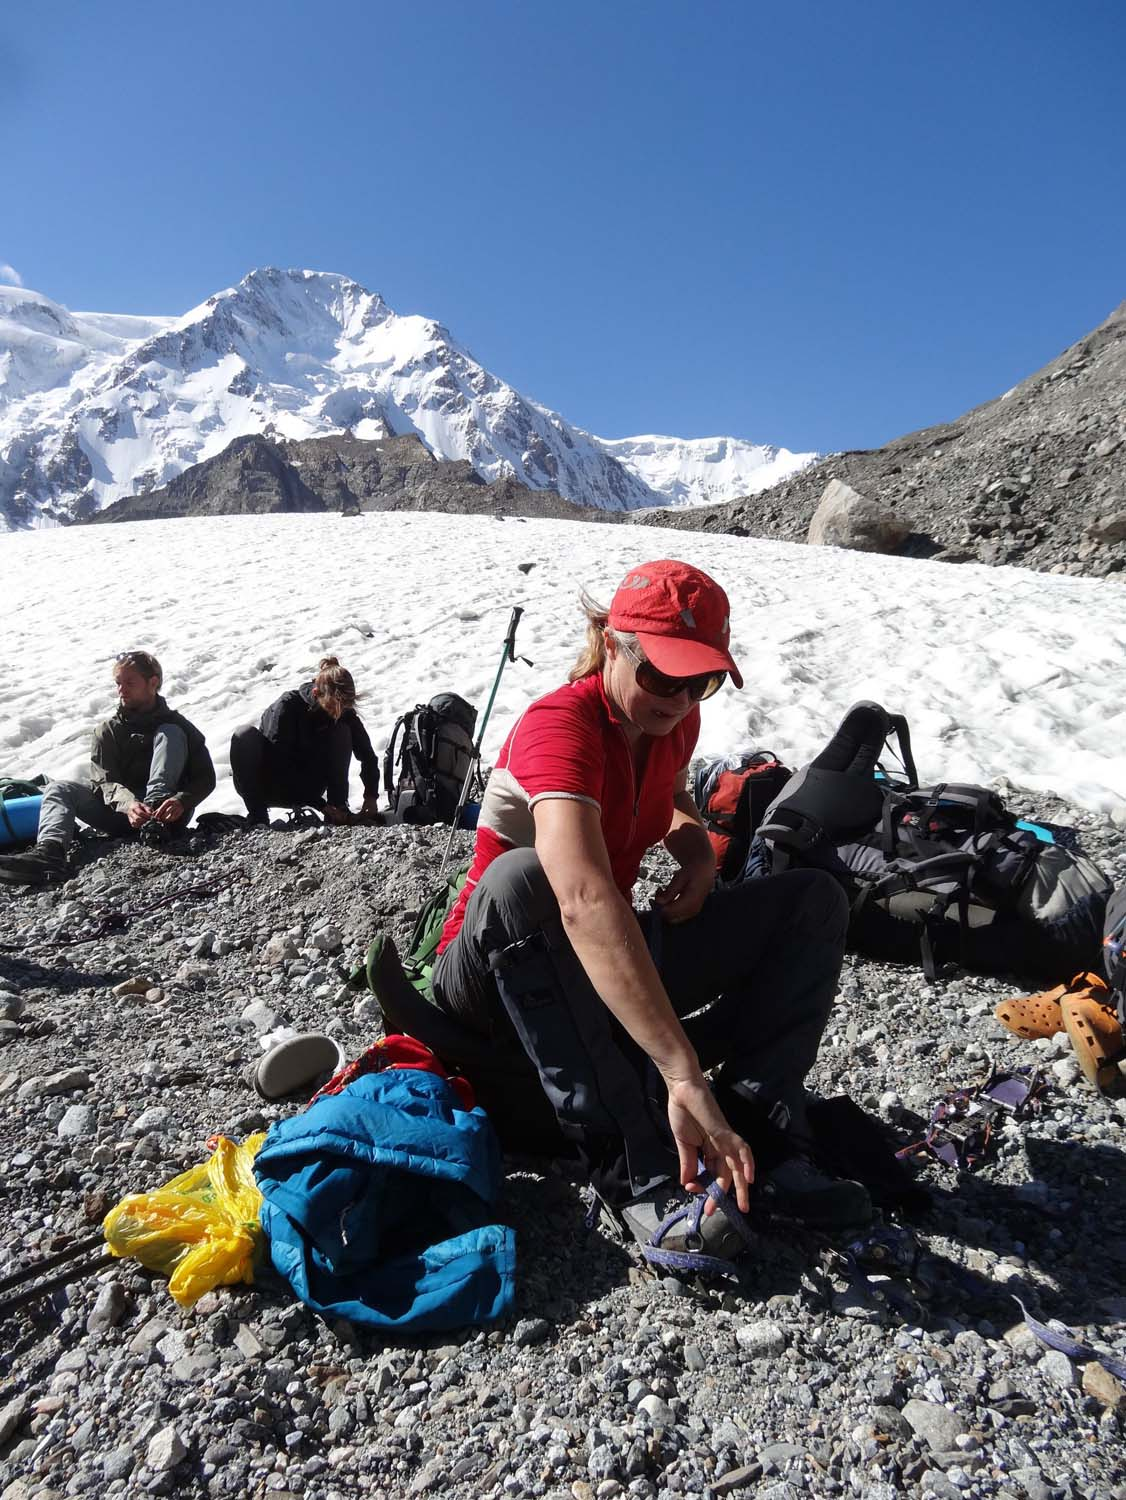 putting on our crampons